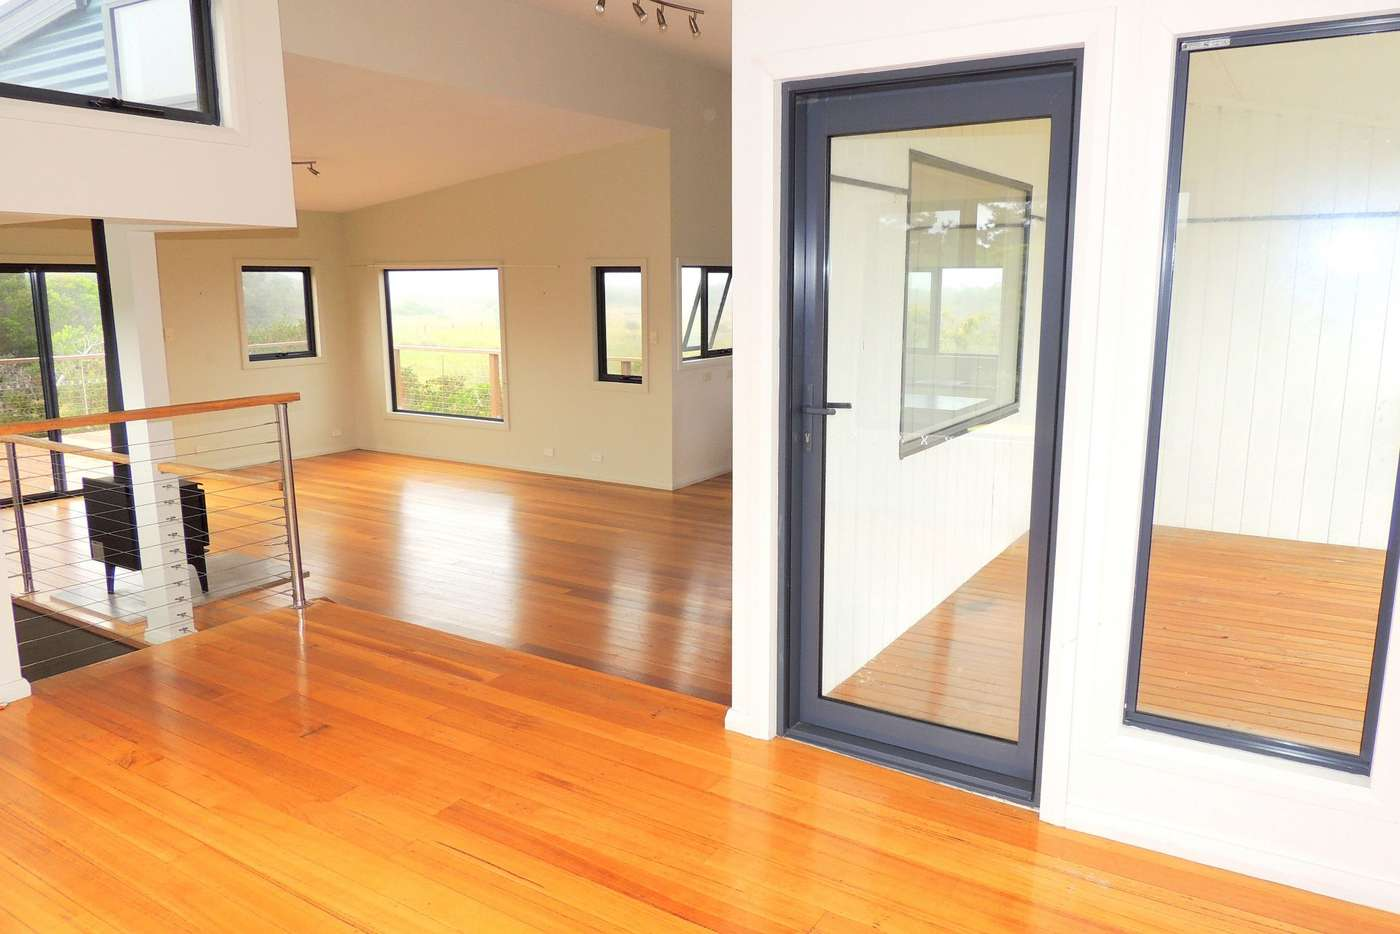 Seventh view of Homely house listing, 4 Templestowe St, Seymour TAS 7215